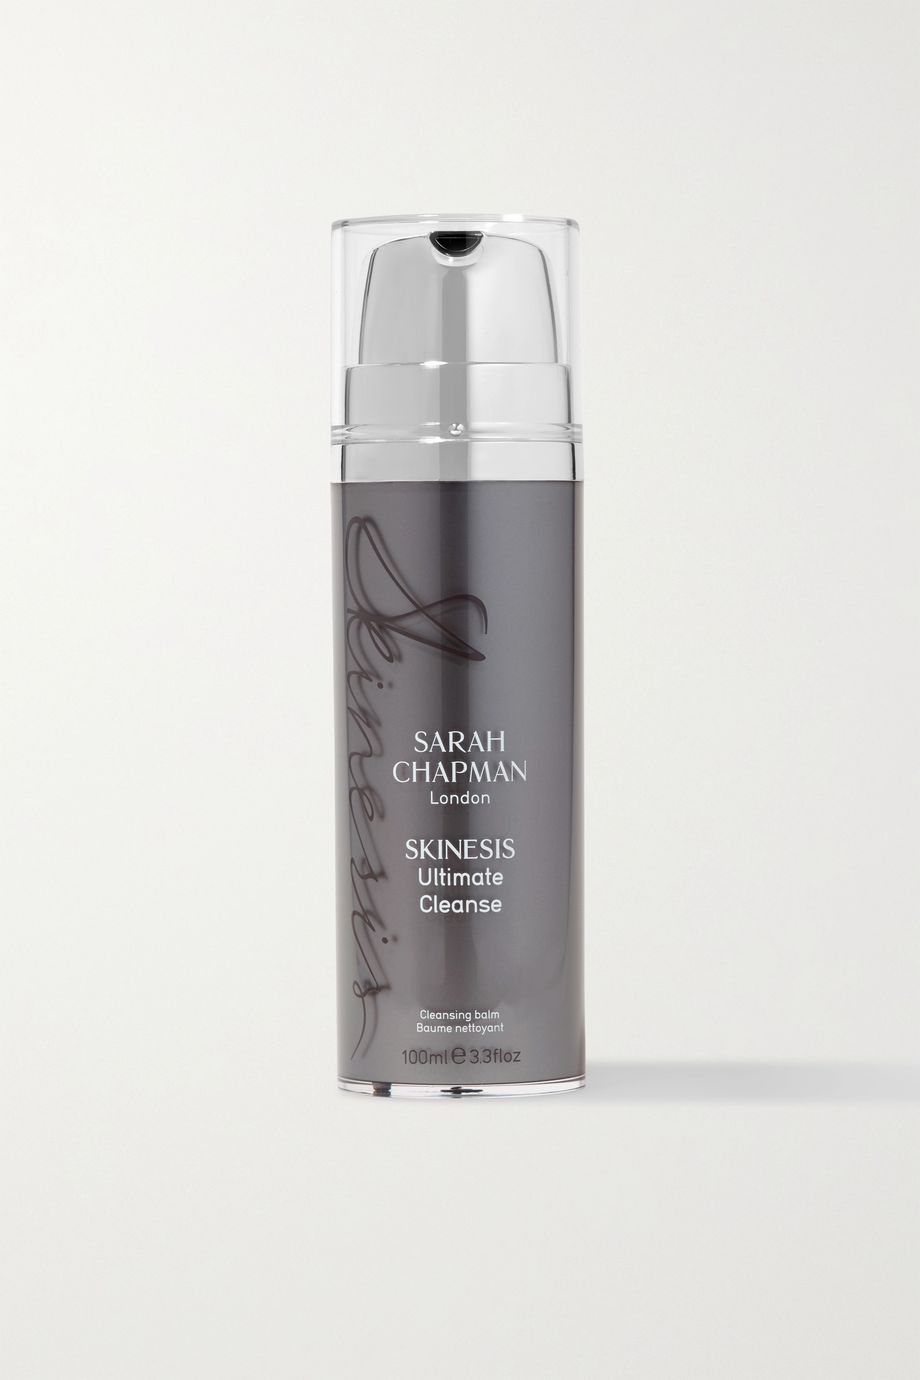 Sarah Chapman Skinesis Ultimate Cleanse, 100ml – Cleanser